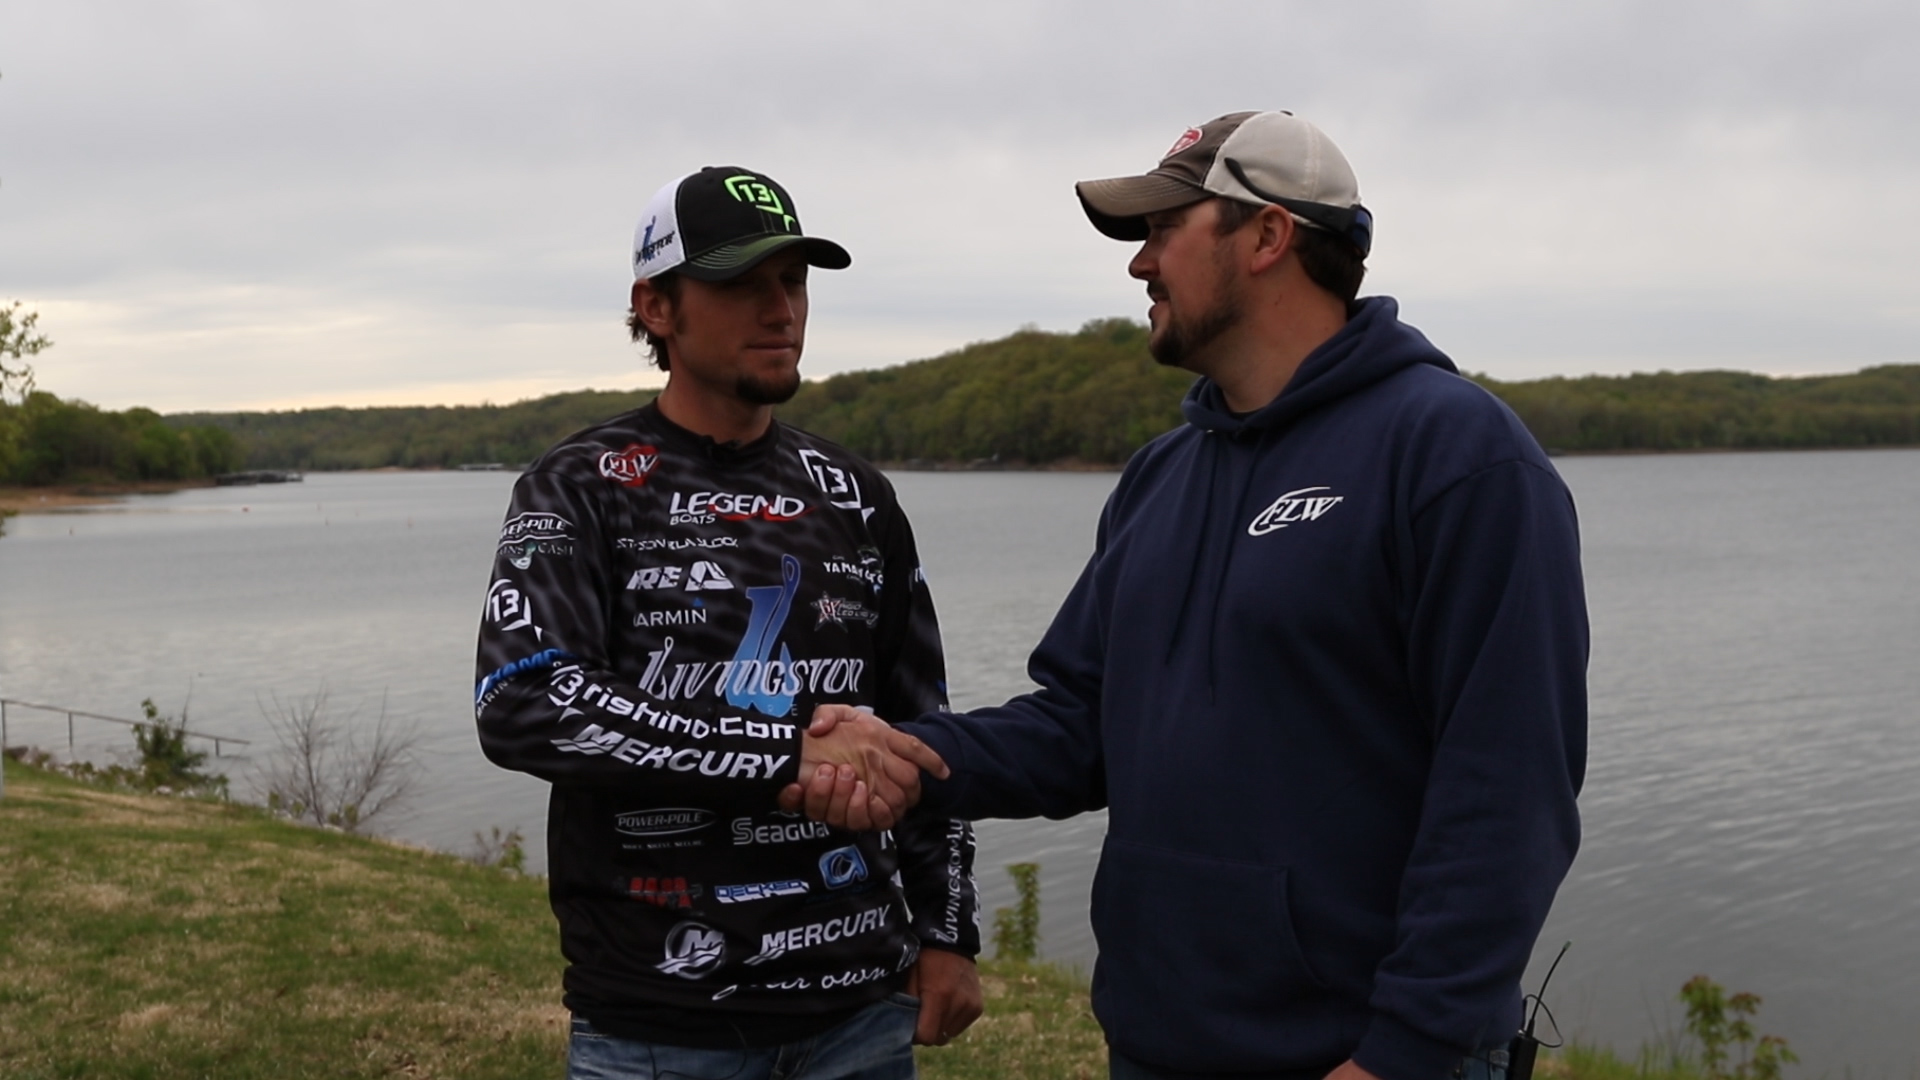 Bedding Bass Play for Blaylock